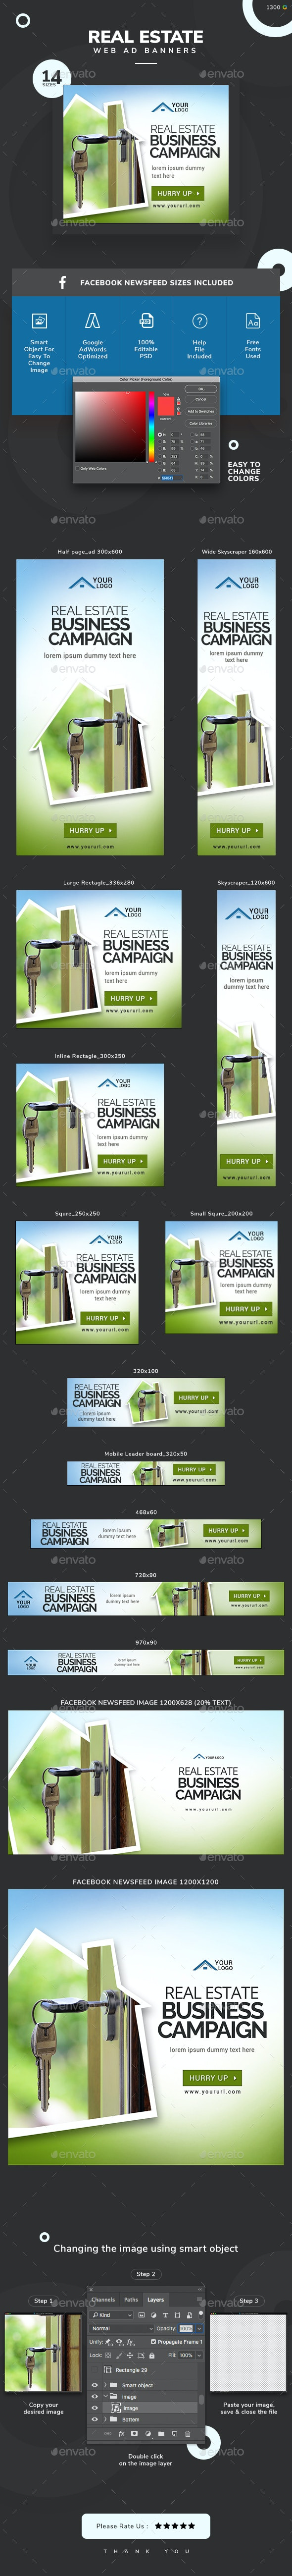 Real Estate Banners - Updated! - Banners & Ads Web Elements